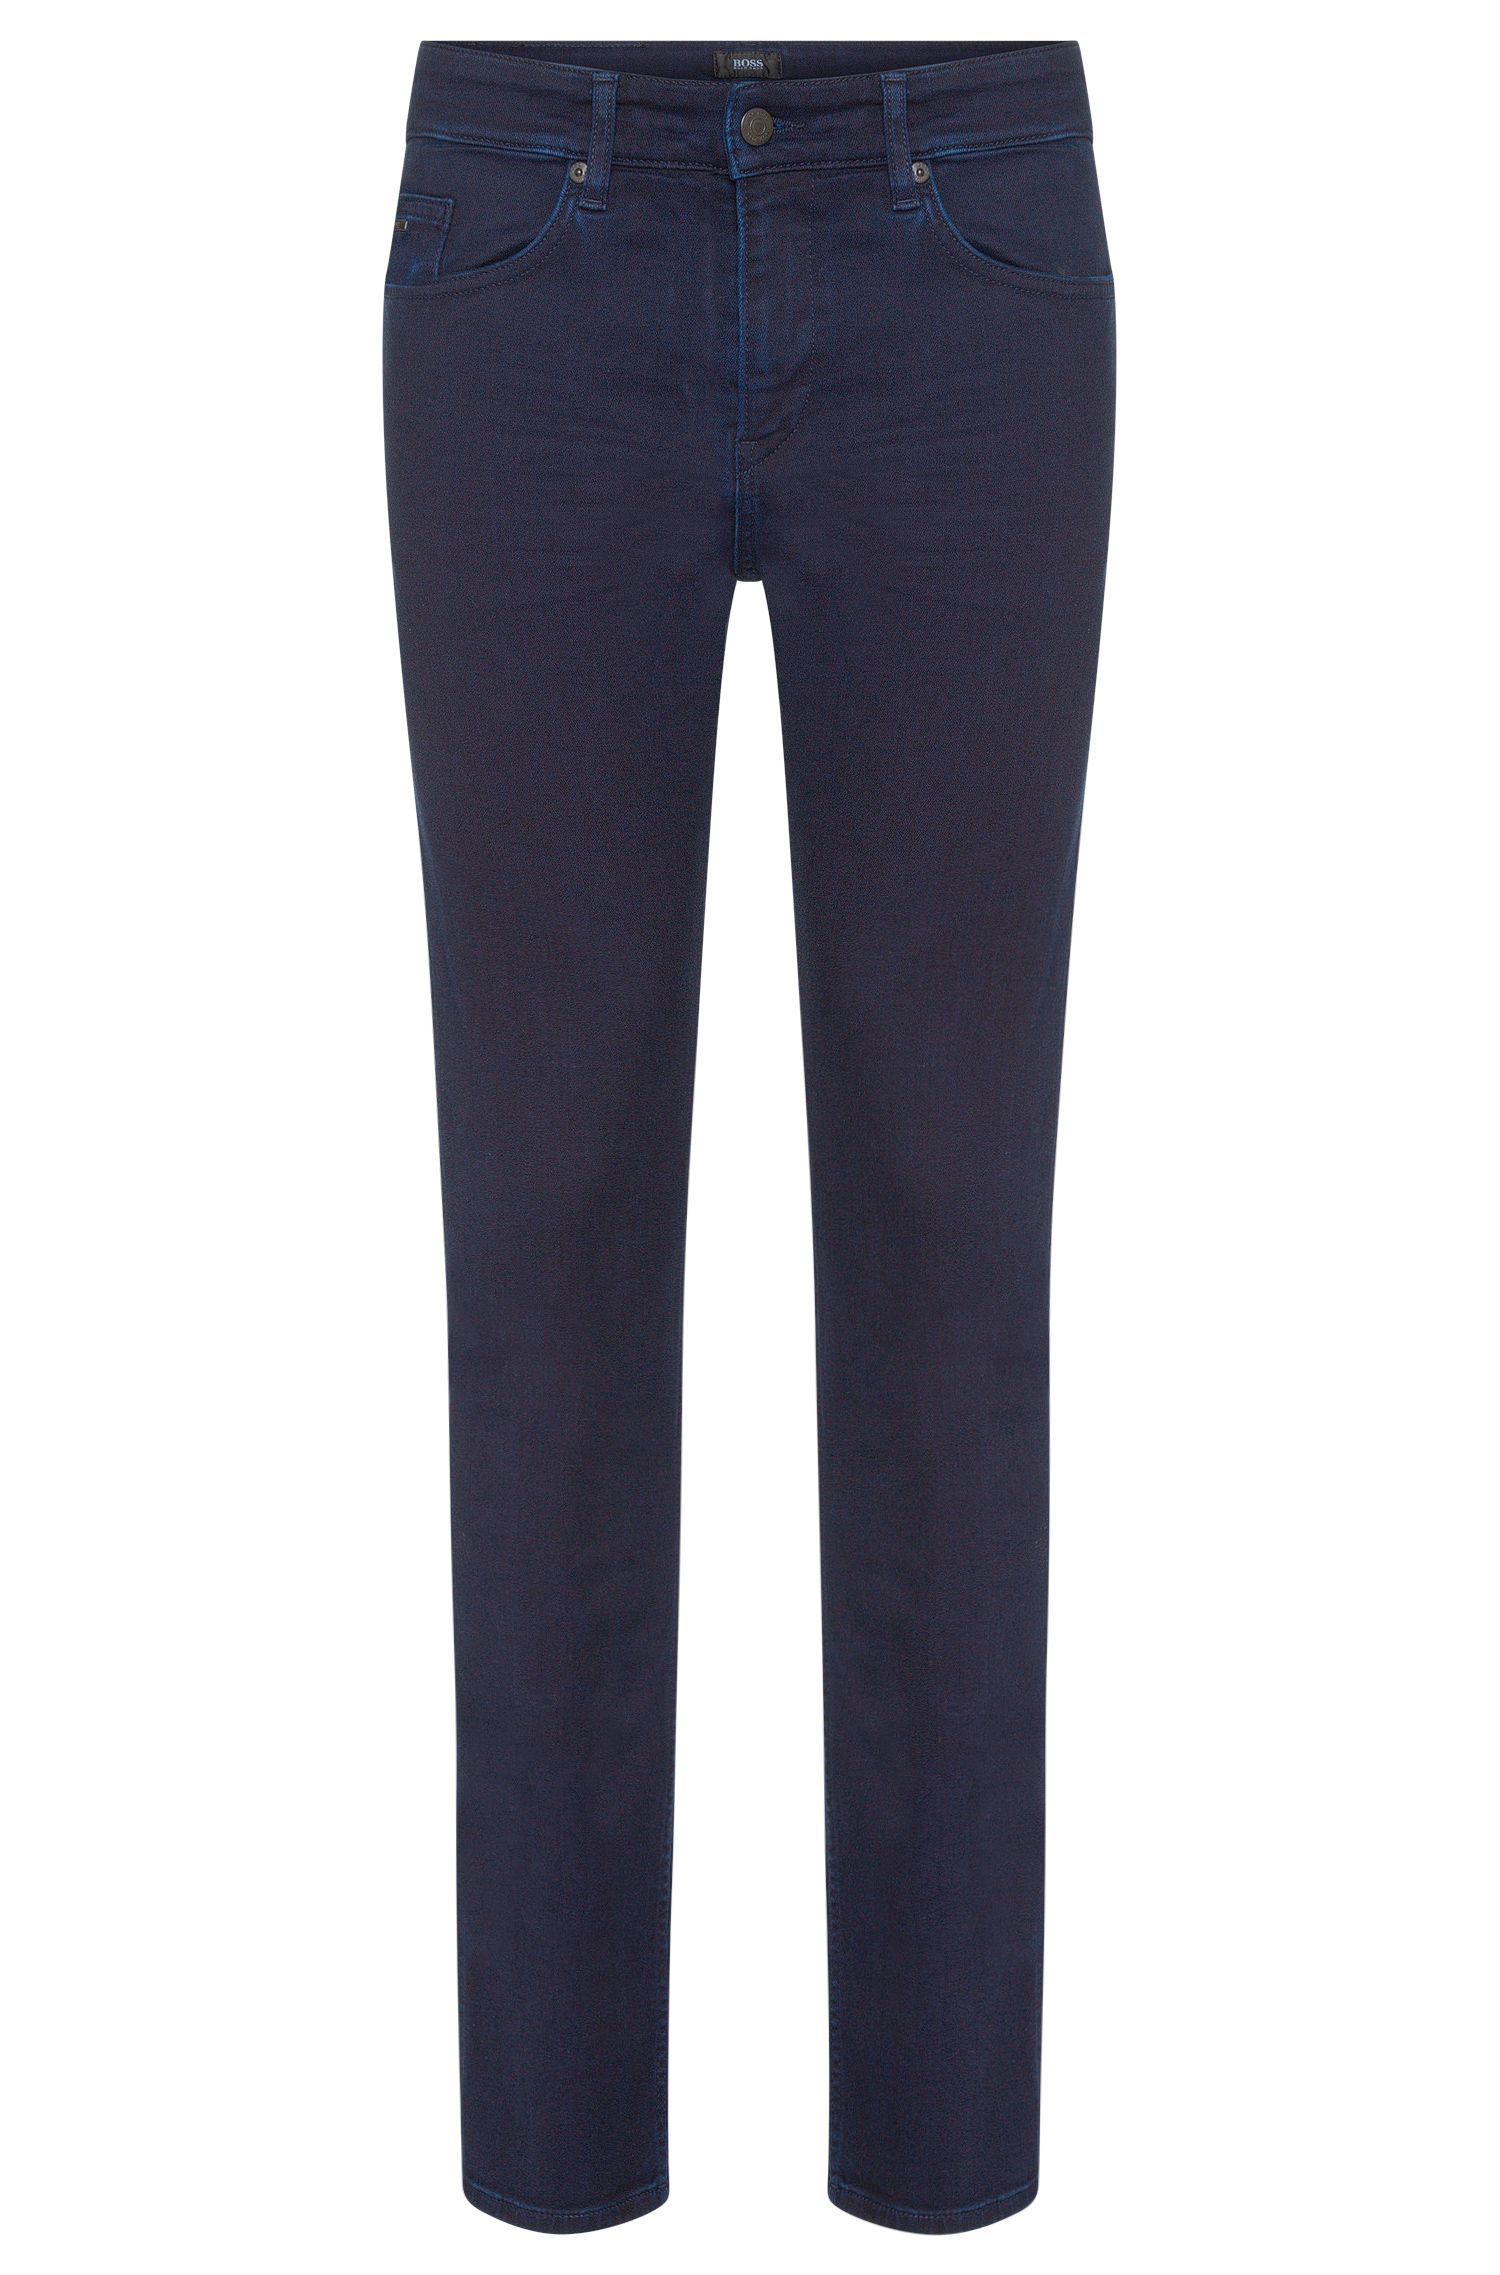 'Delaware' | Slim Fit, 9.5 oz Stretch Cotton Jeans